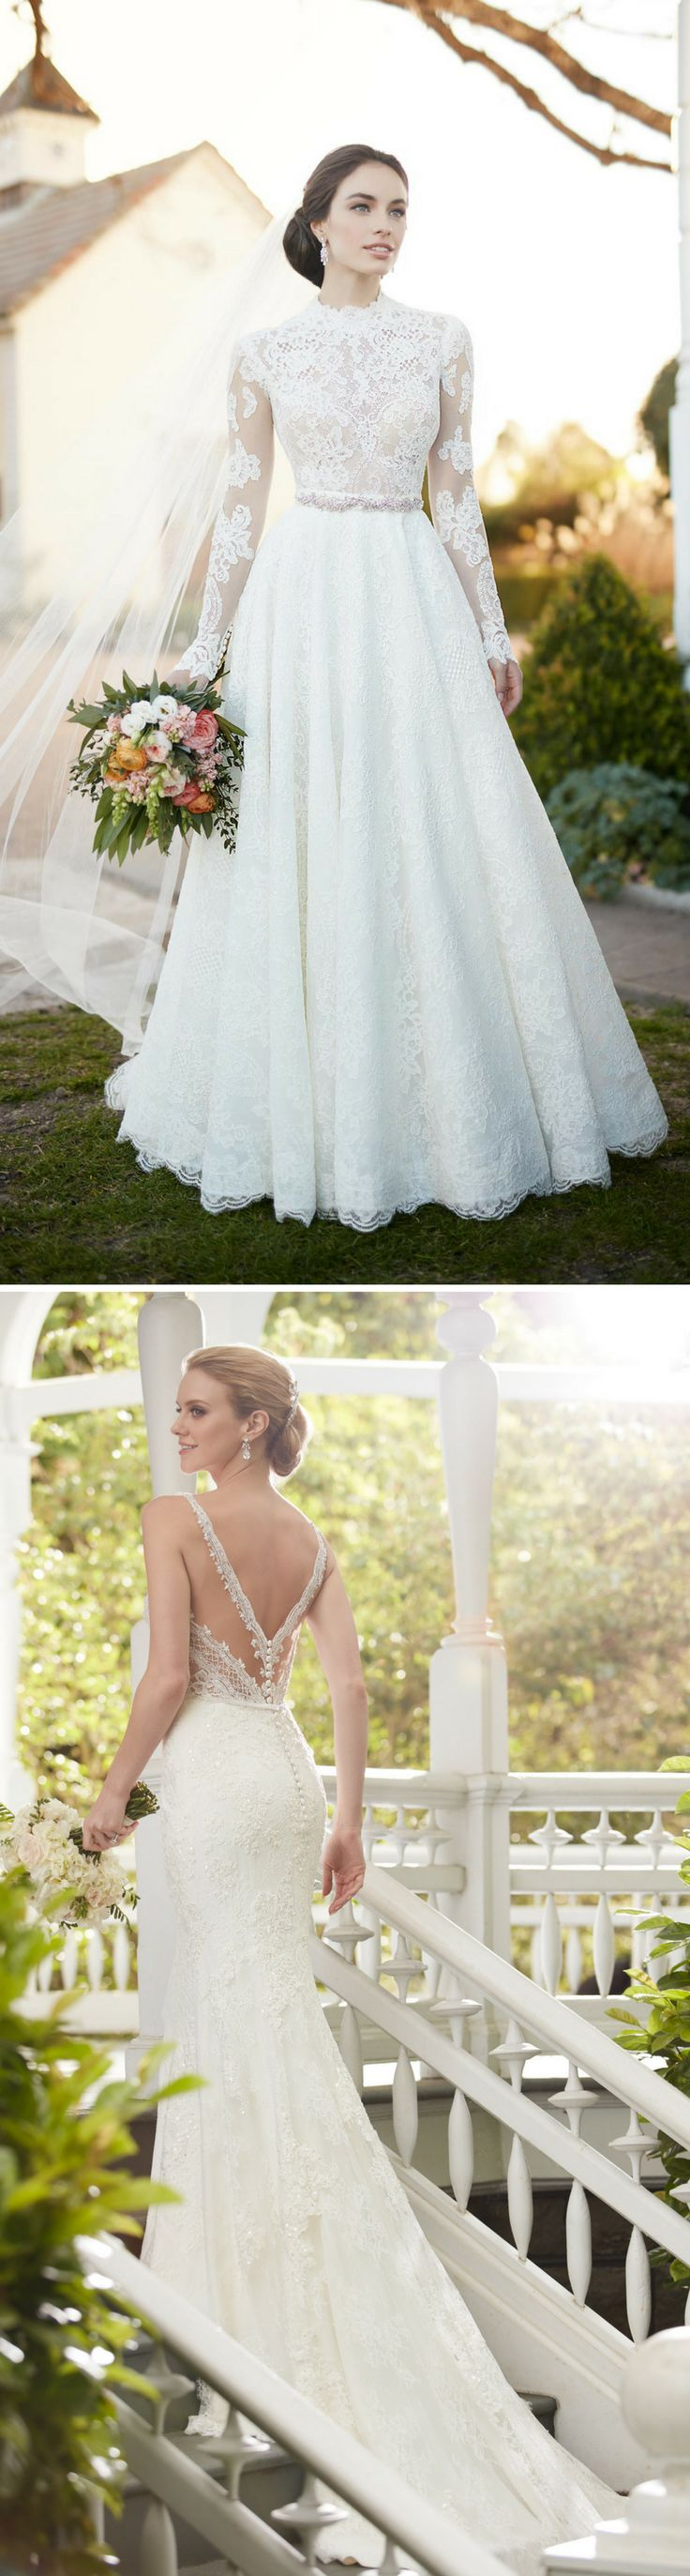 376 best Antique Wedding Dresses images on Pinterest | Vintage gowns ...